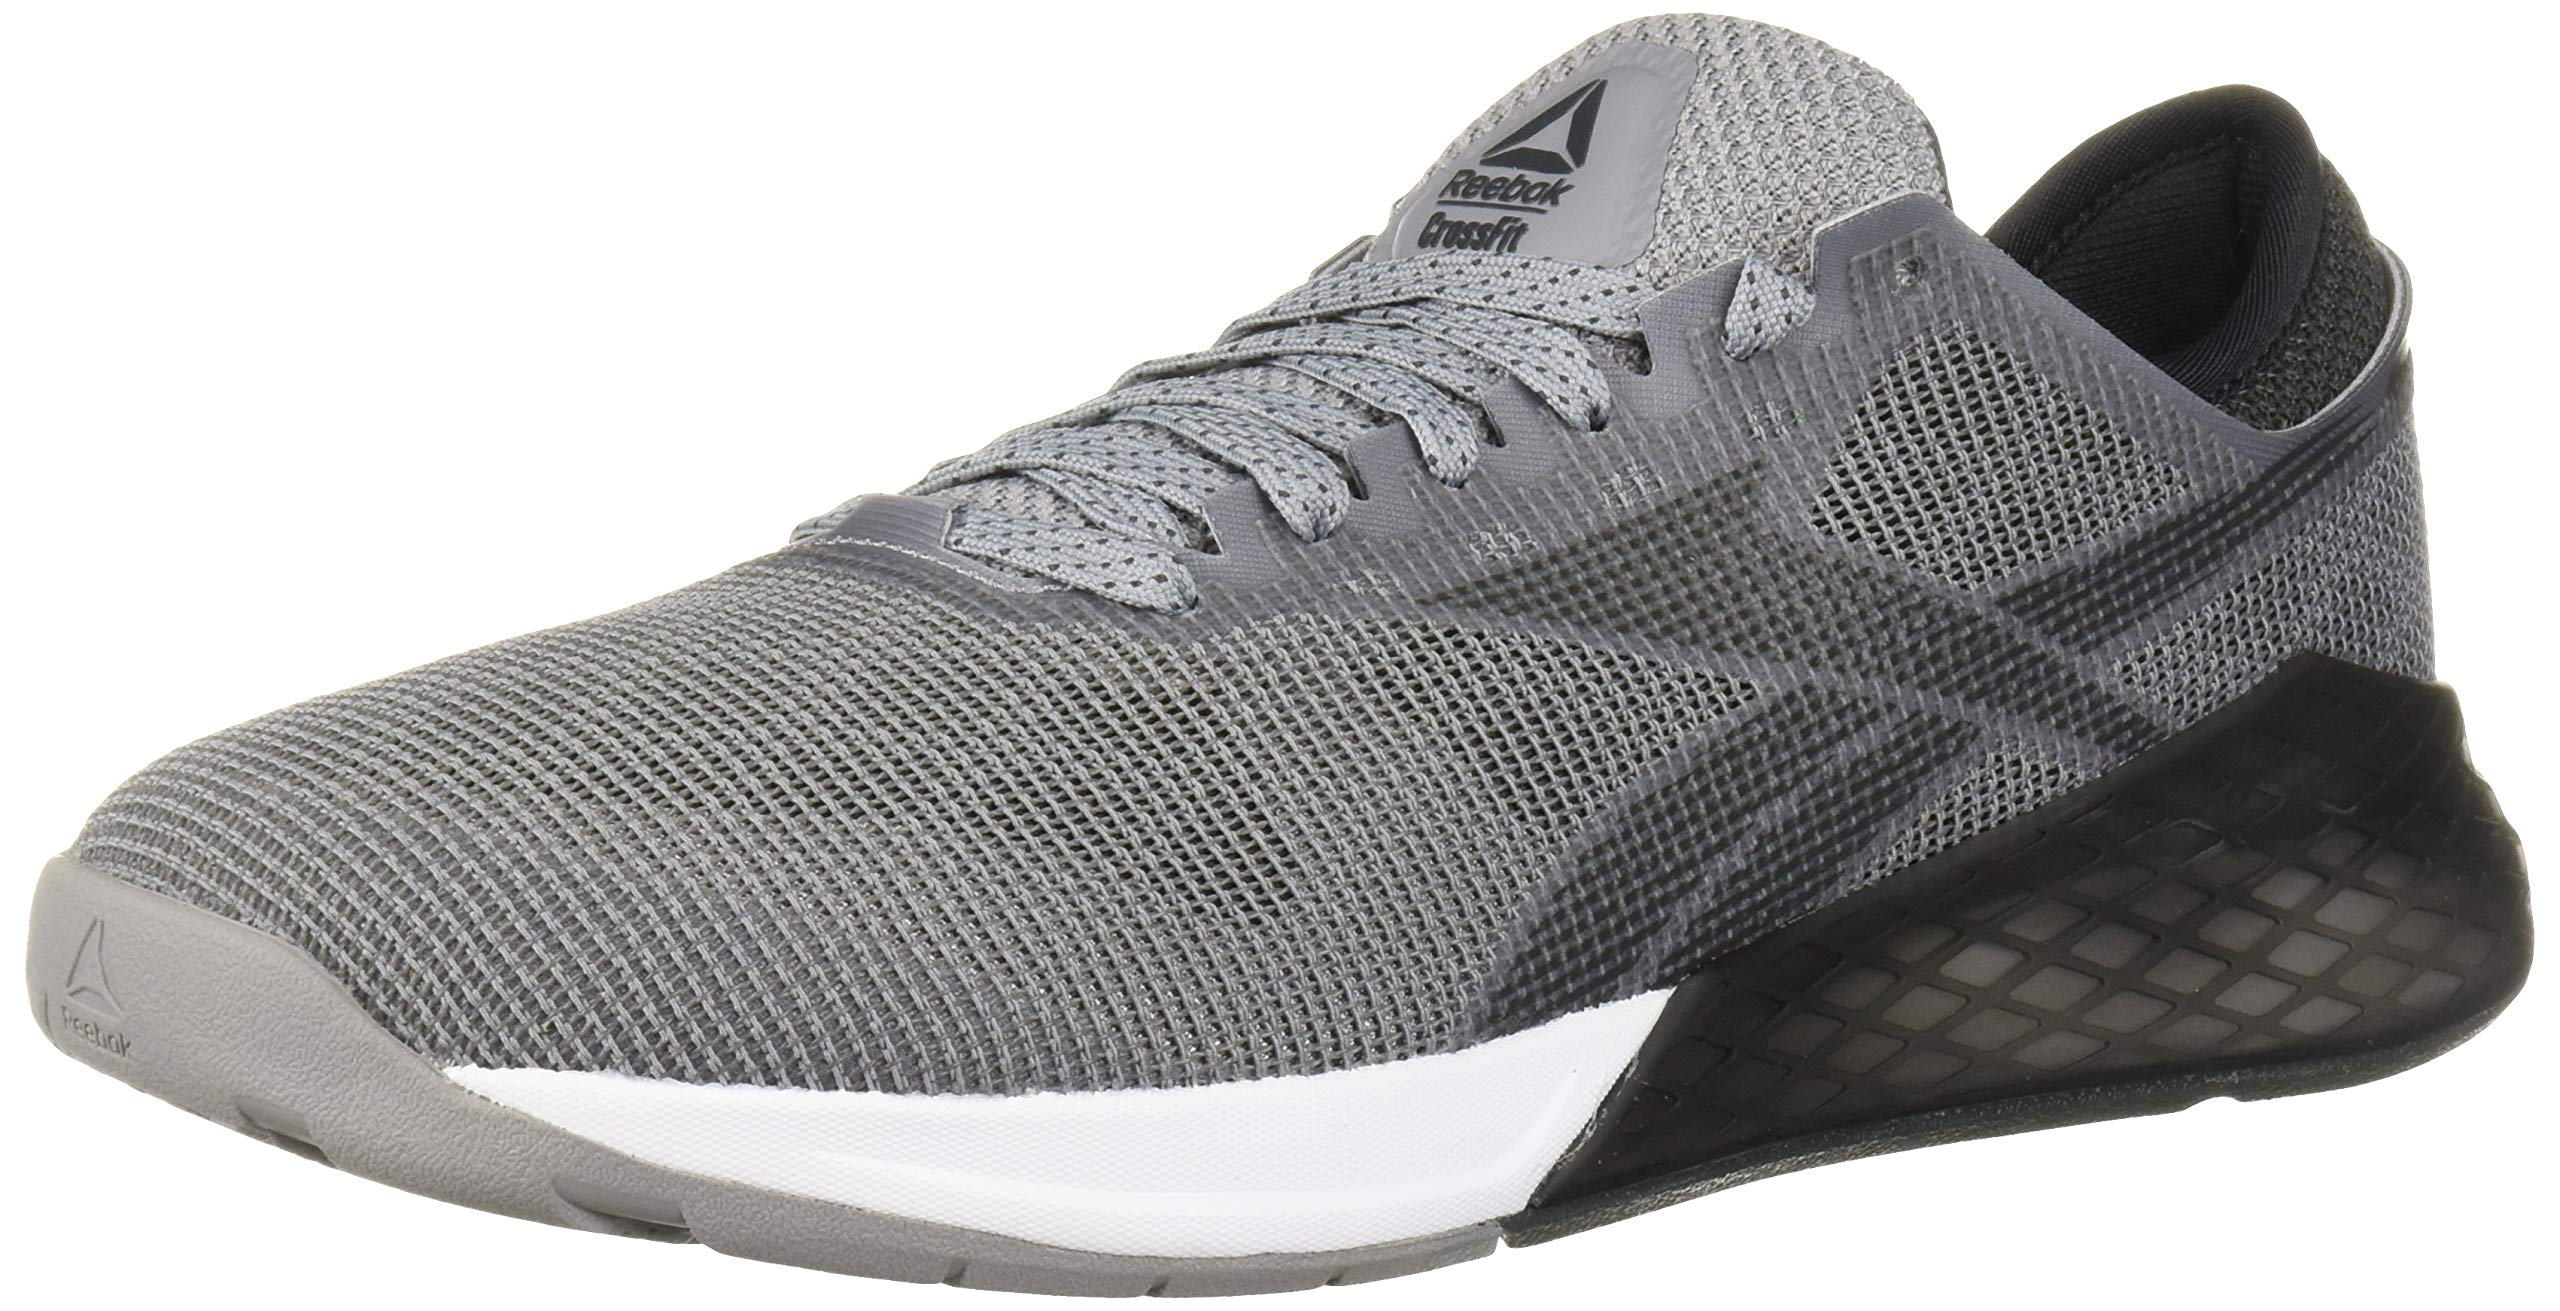 Reebok Men's Nano 9 Cross Trainer, Cool Shadow/Cold Grey, 8 M US